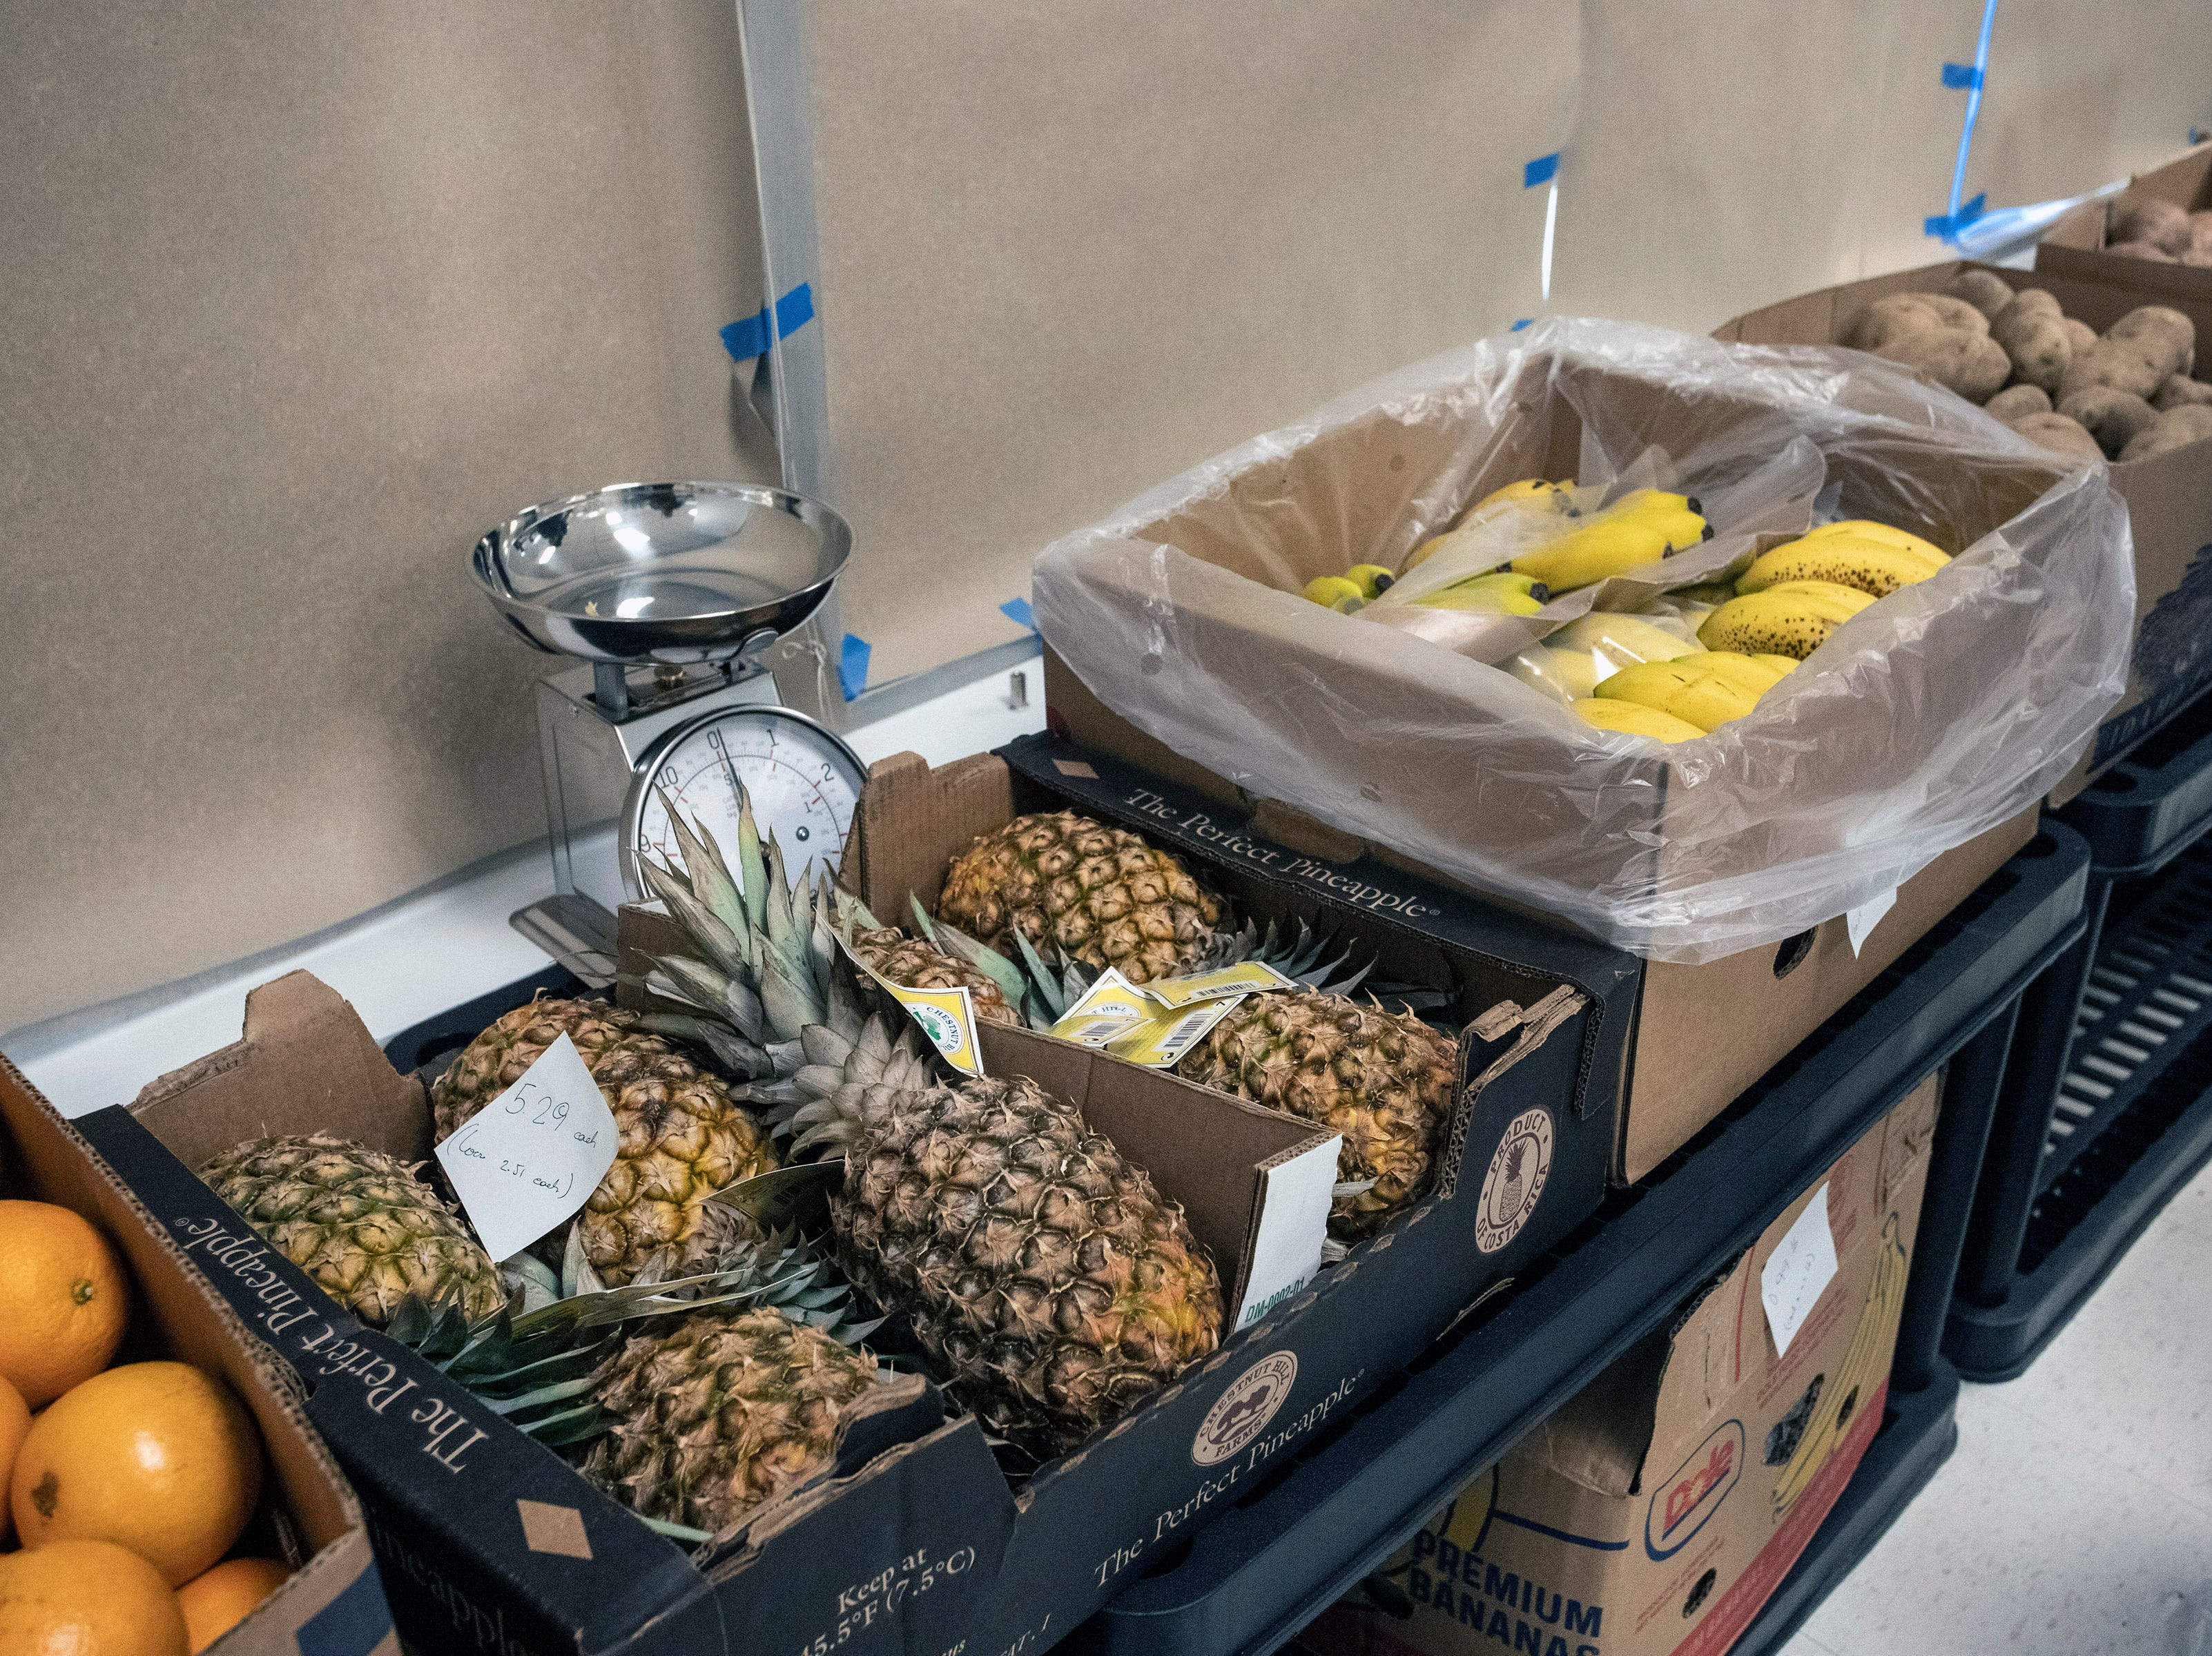 Fresh produce and vegetables are part of the selection at the Superior Market & Deli on Broadway as downtown Louisville tries to evolve past its food desert status. 5/10/19